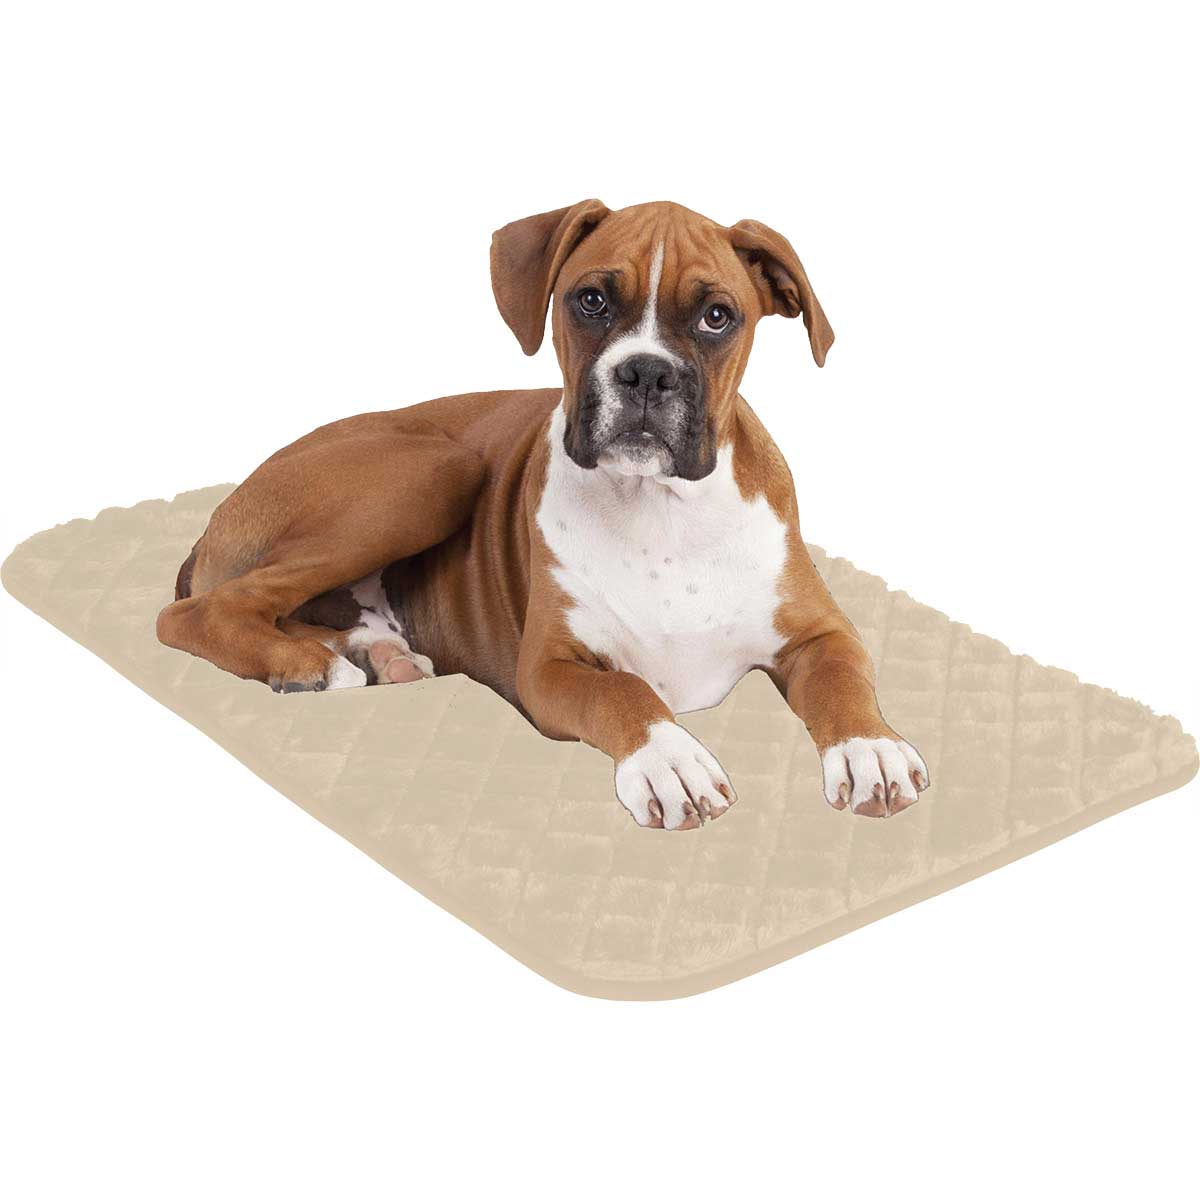 Snoozzy Sleeper Natural for Dogs 23 inches by 16 inches